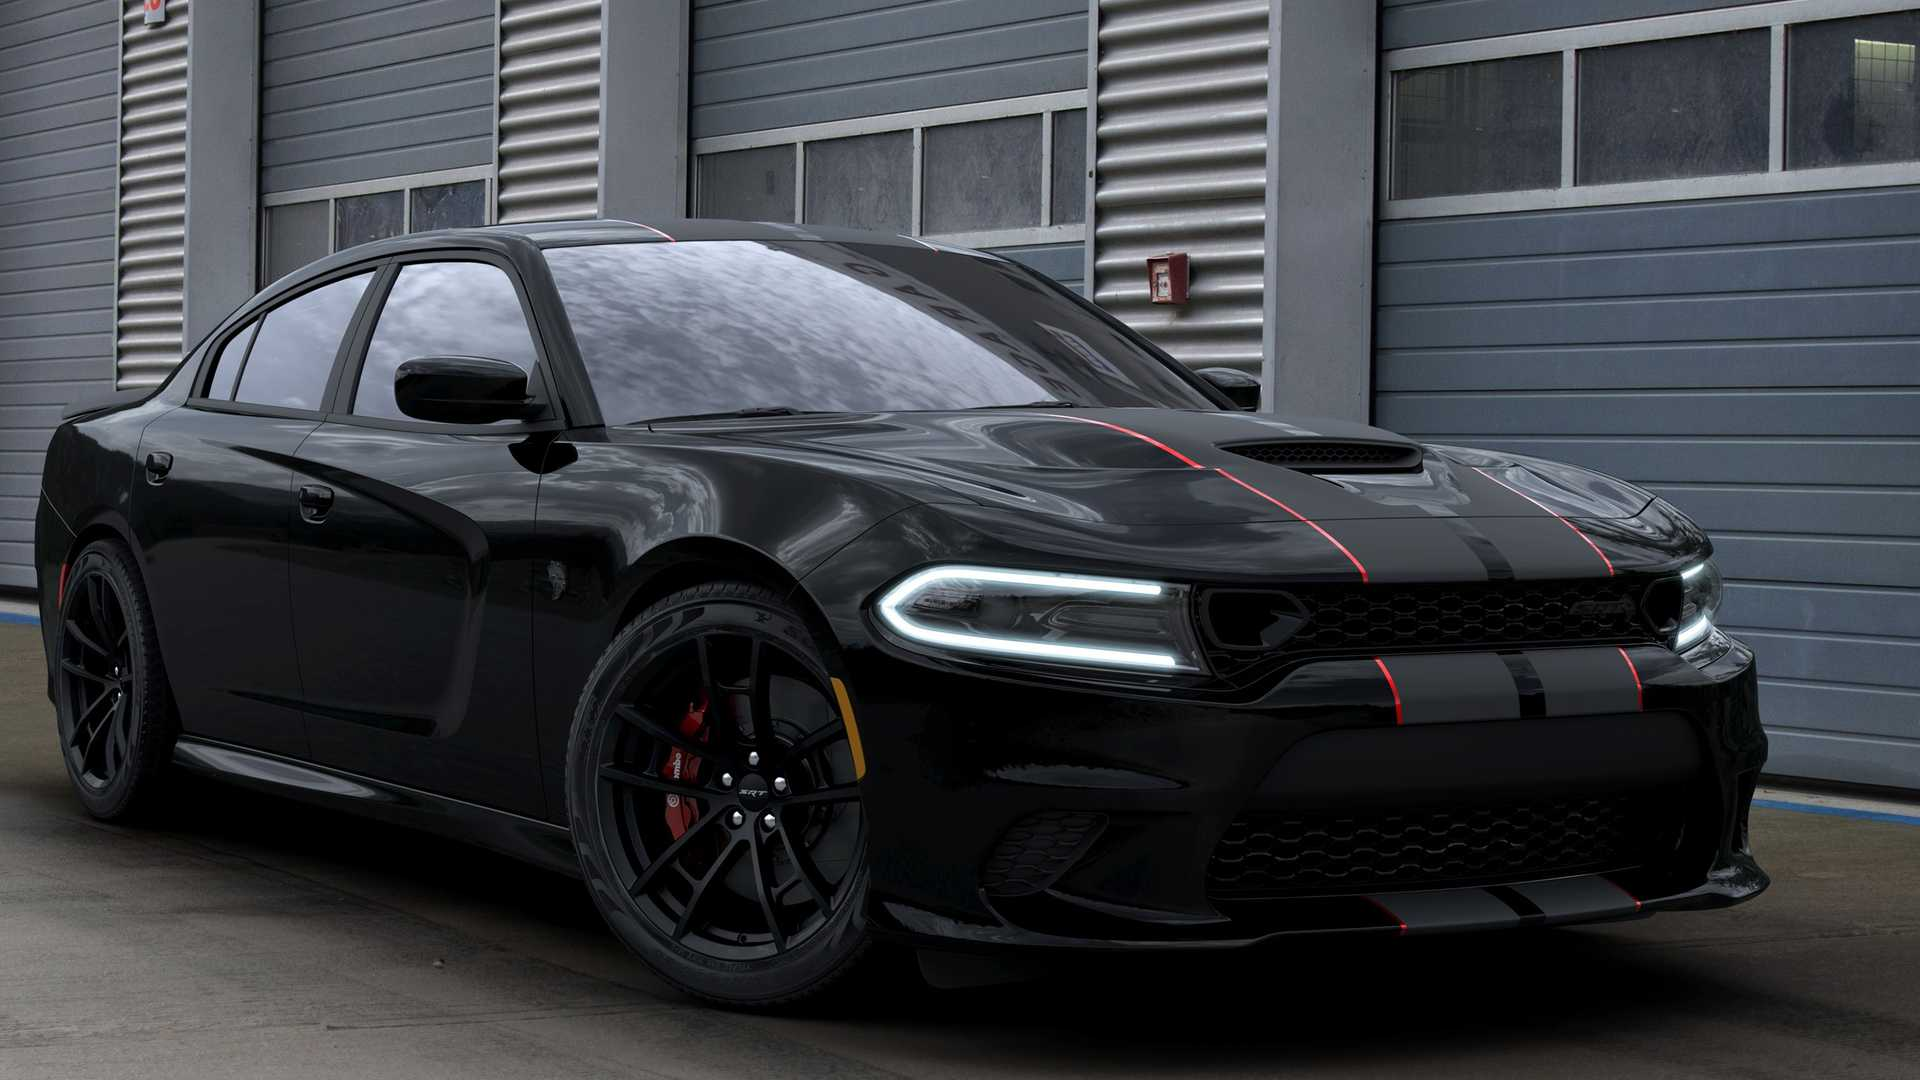 Dodge Charger Srt Hellcat Octane Edition Gets Stealthy Look